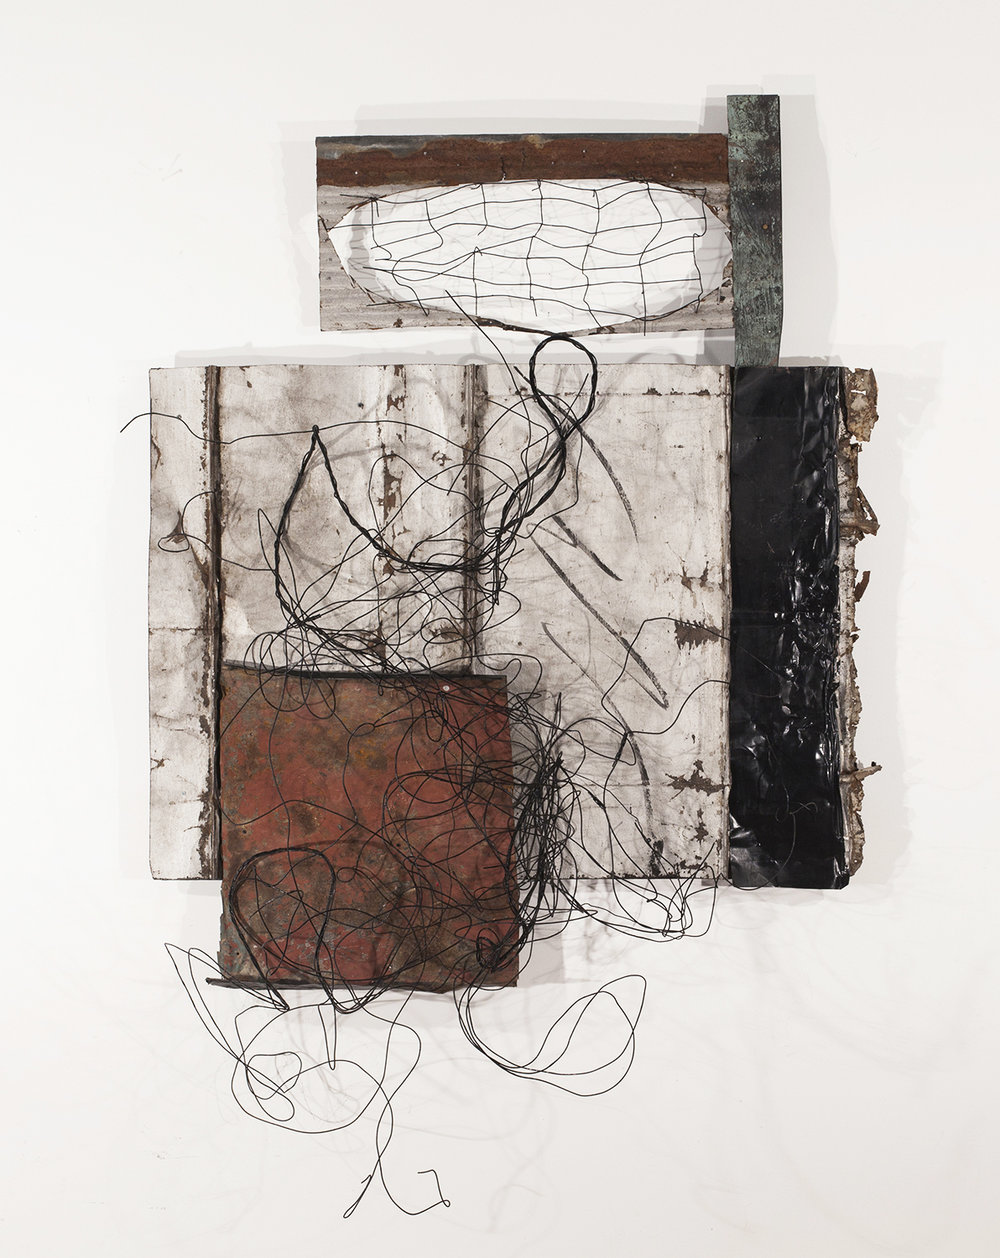 "#990: Three kinds of metal roofing - copper, corrugated, and steel, burned wire, metal fencing, 76""x 50""x 22"""